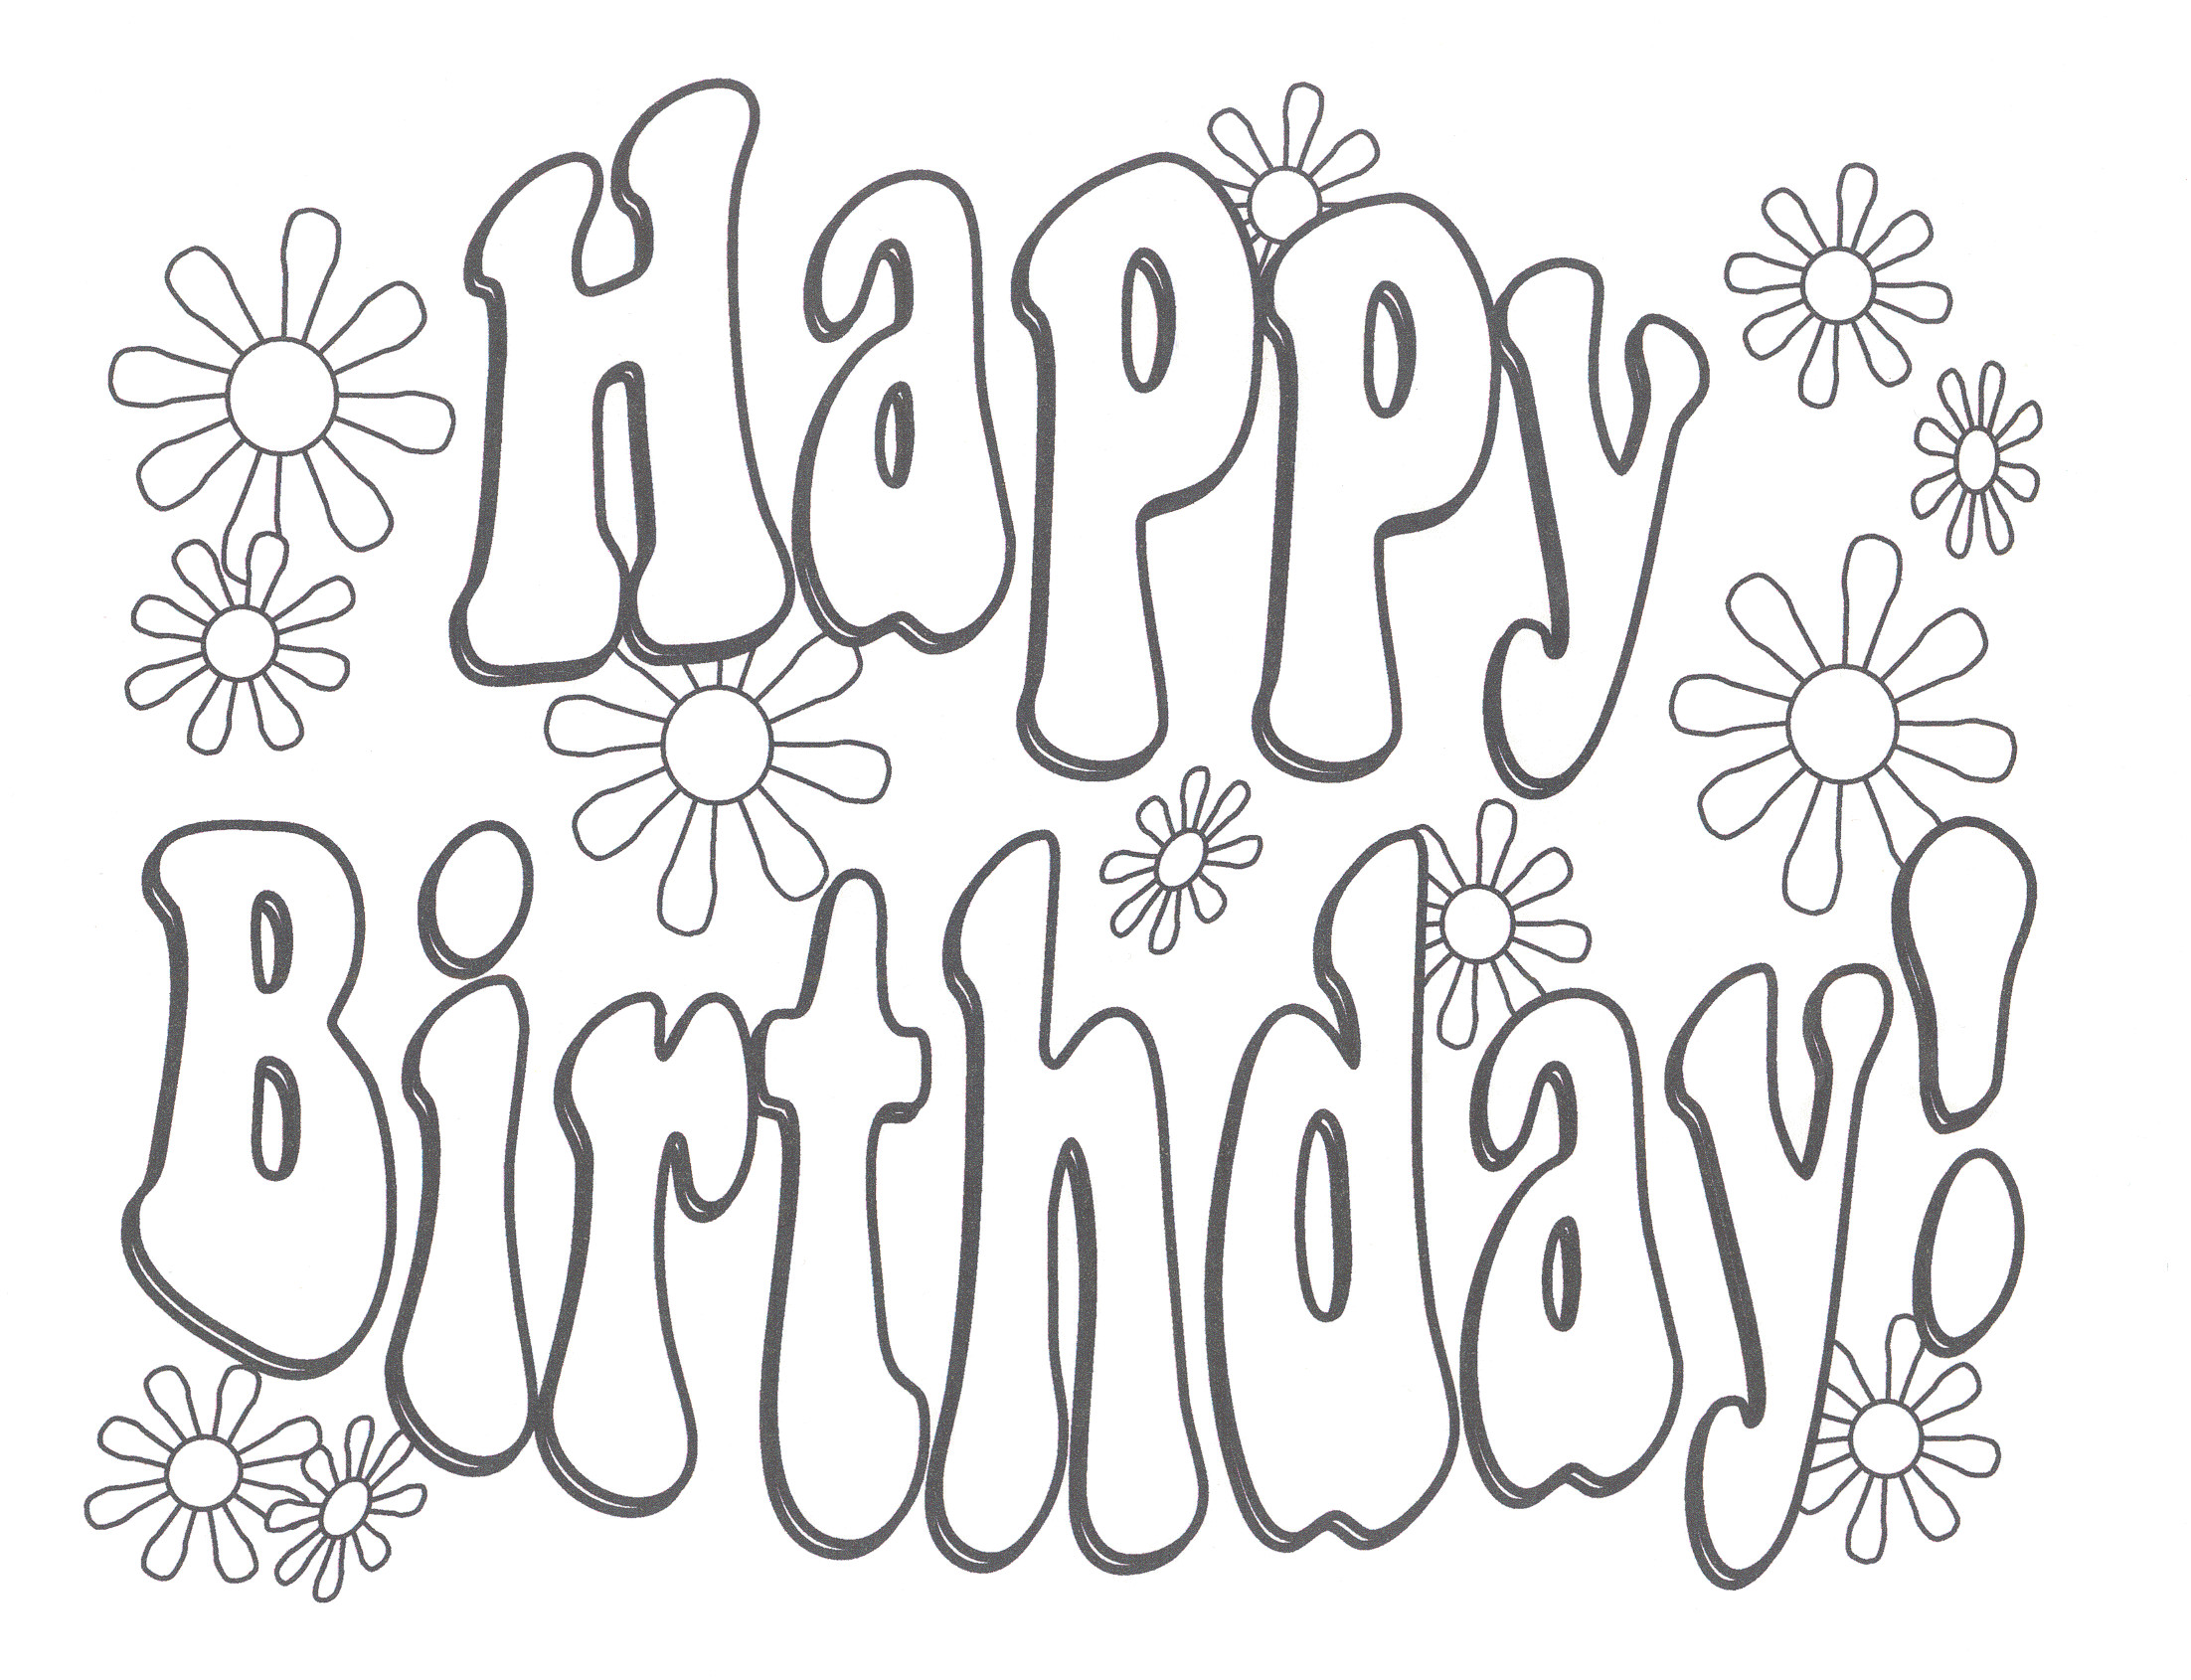 Best ideas about Happy Coloring Sheets For Girls . Save or Pin Happy birthday coloring pages free printable for Now.